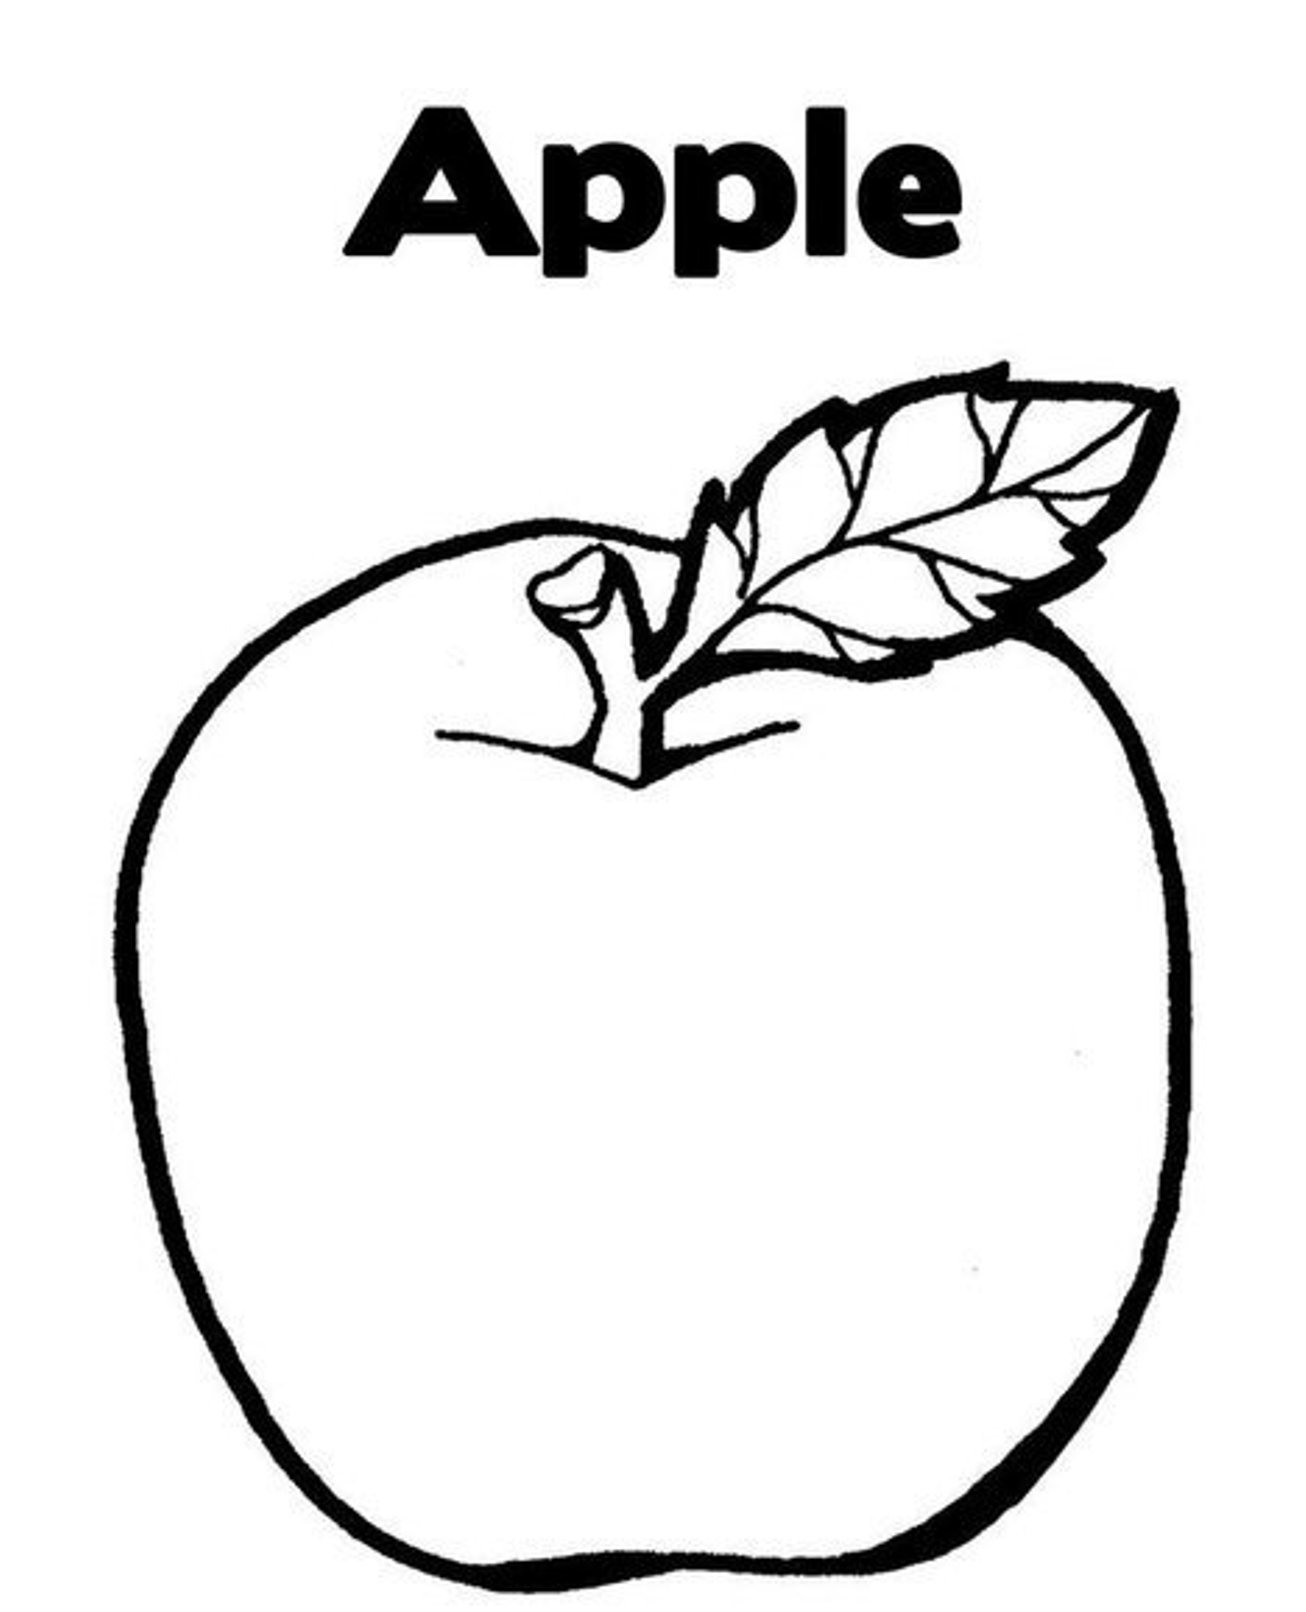 colouring images of fruits free printable fruit coloring pages for kids images of colouring fruits